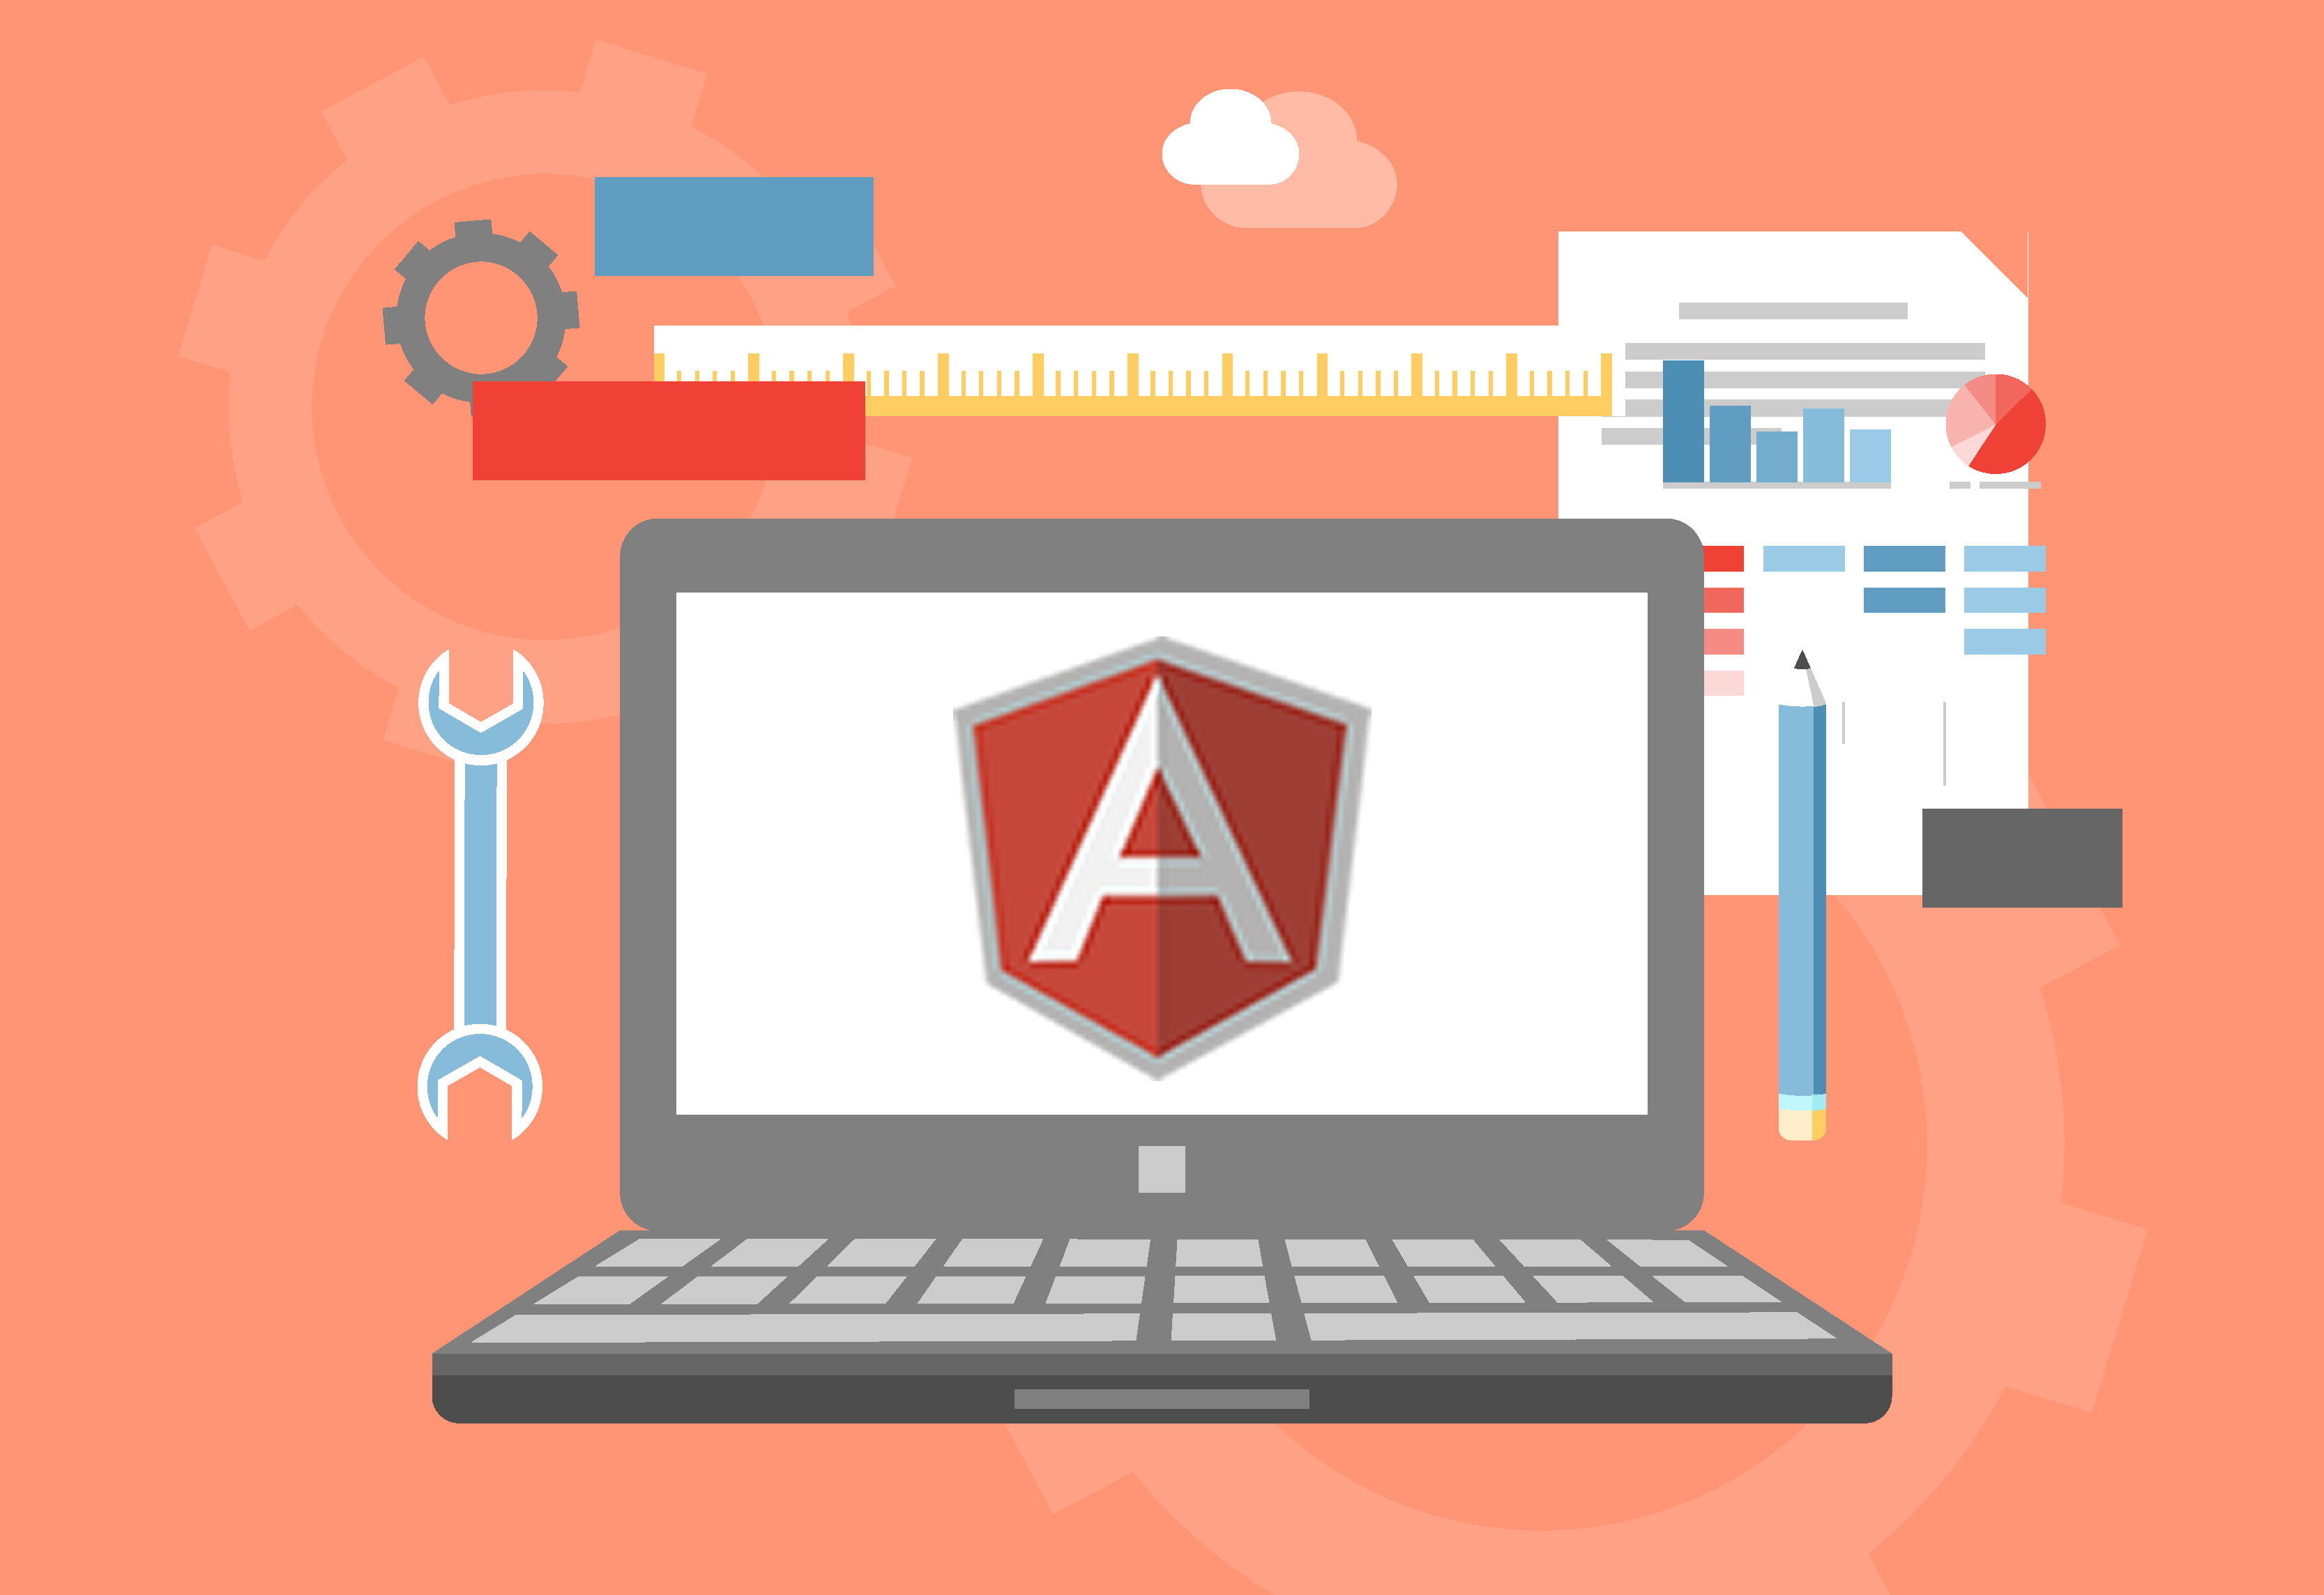 AngularJS is leading in the race of best web application development technology - Image 1